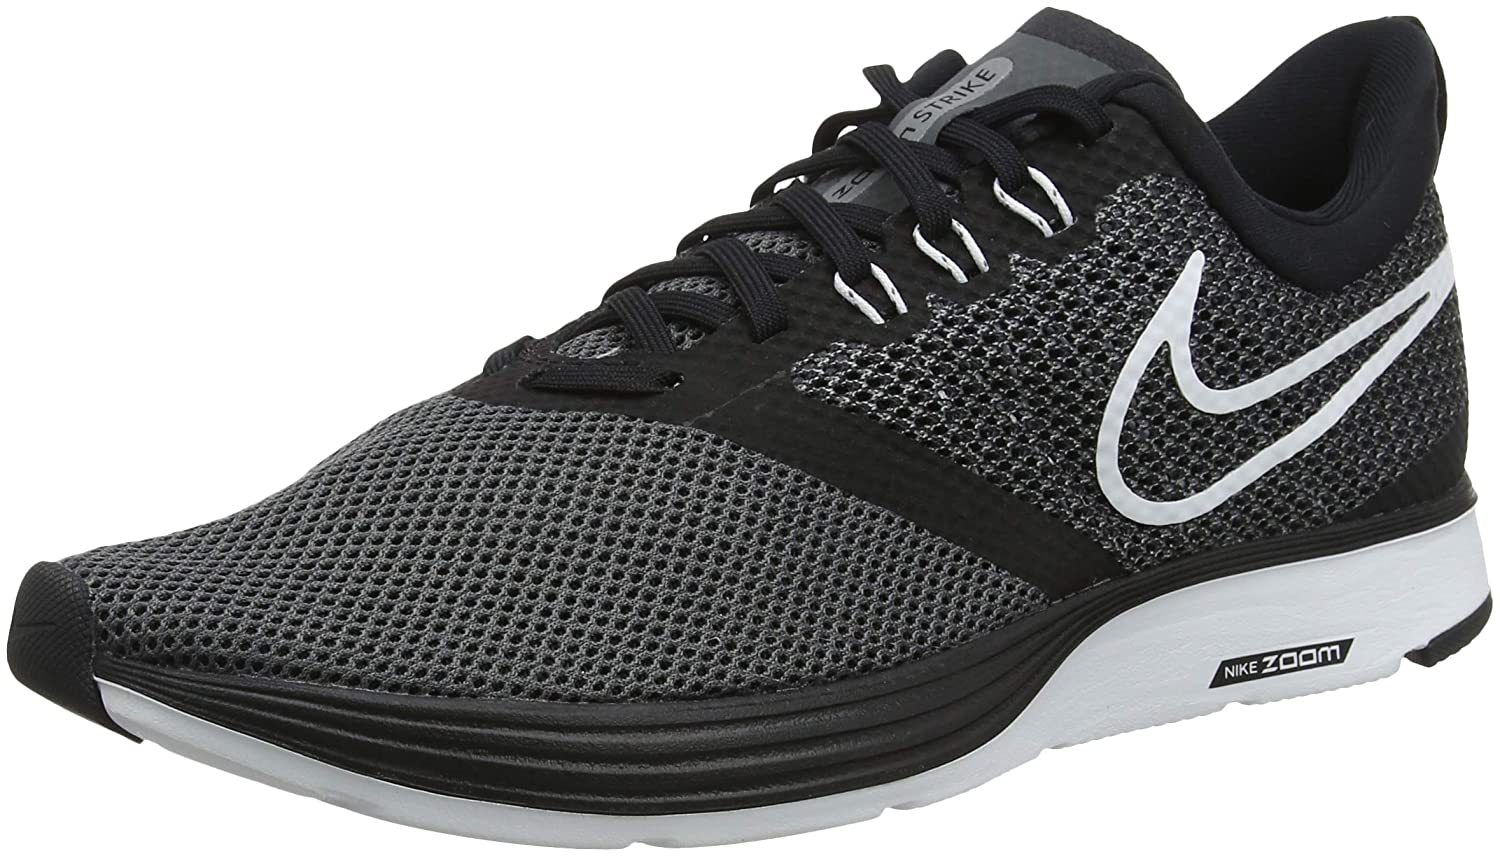 78d9a0106ca37 Amazon.com  Nike Men s Zoom Strike Running Shoes  Nike  Shoes